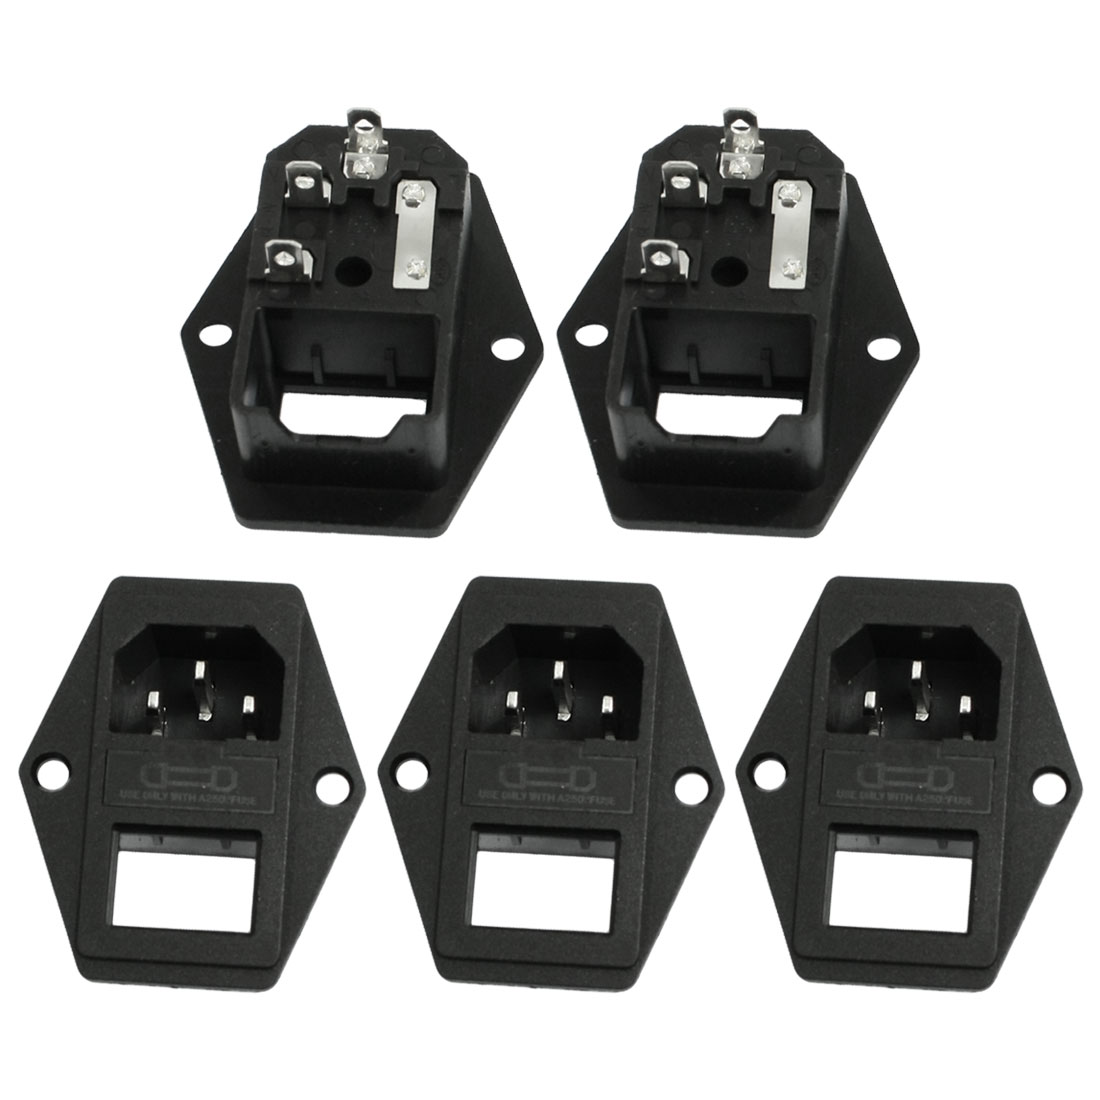 5 Pcs AC 250V 15A IEC 320 C14 3 Terminals Power Inlet Socket